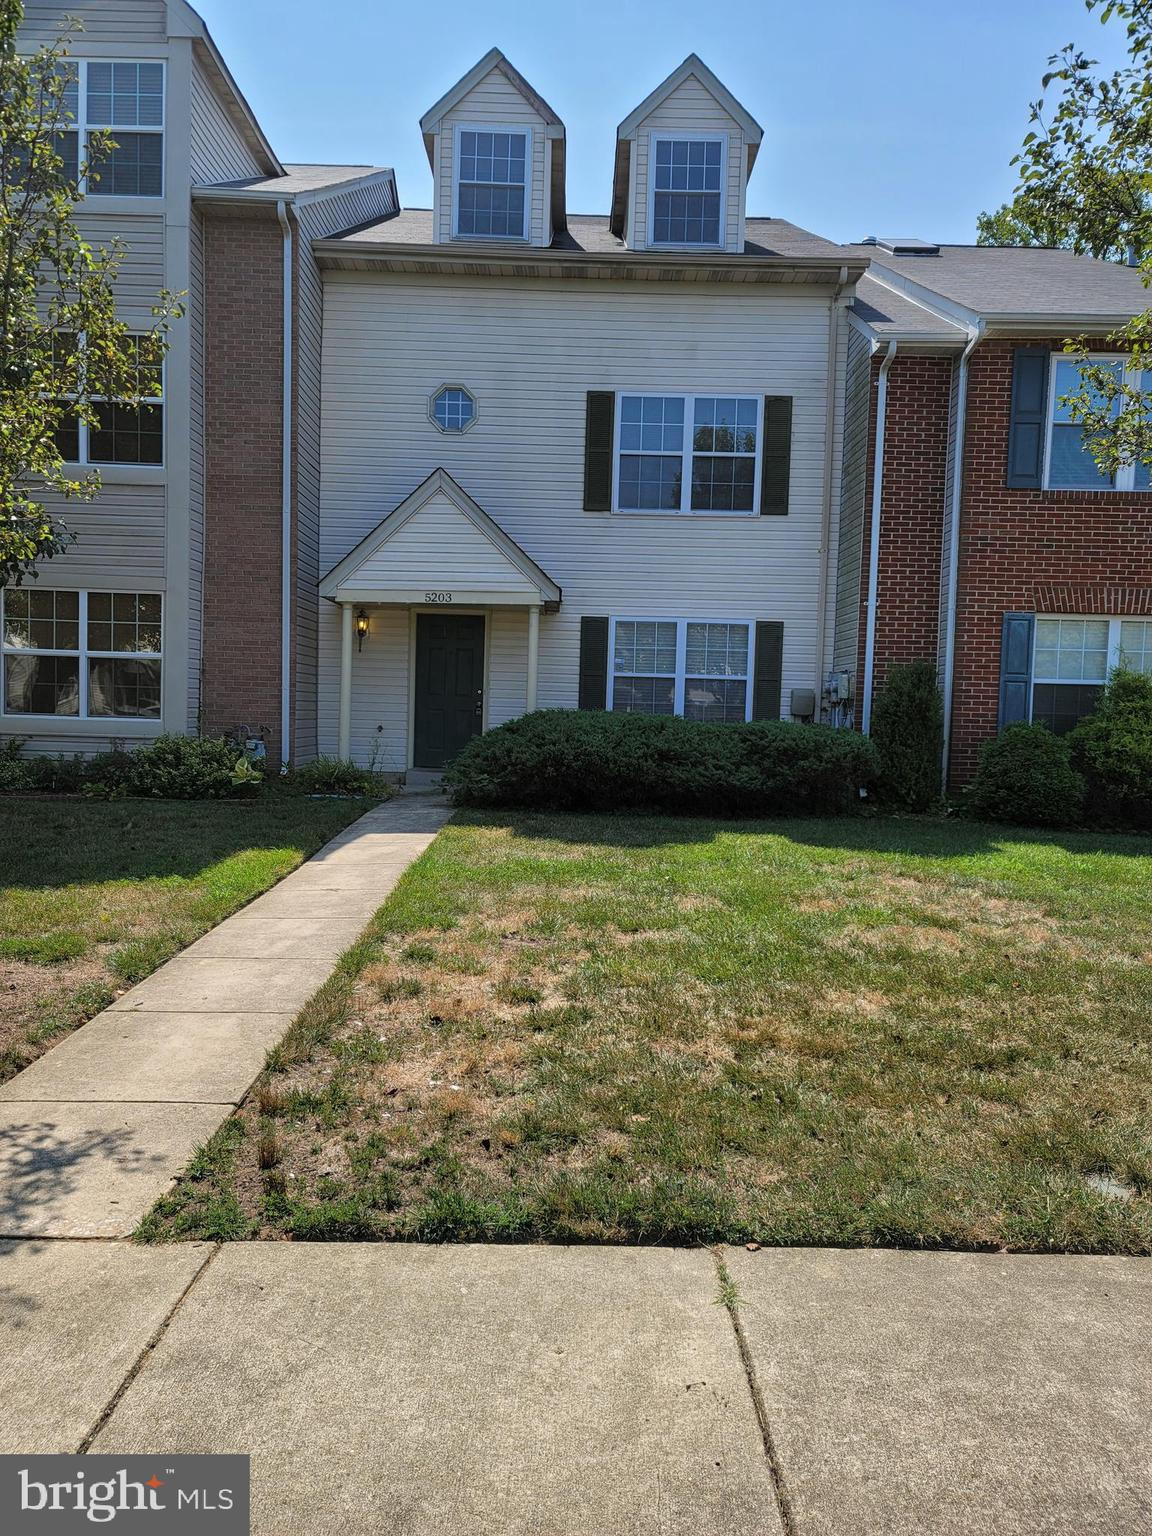 This townhouse is a very good size with 4 bedrooms and 3 and half baths. There will be a new stove a